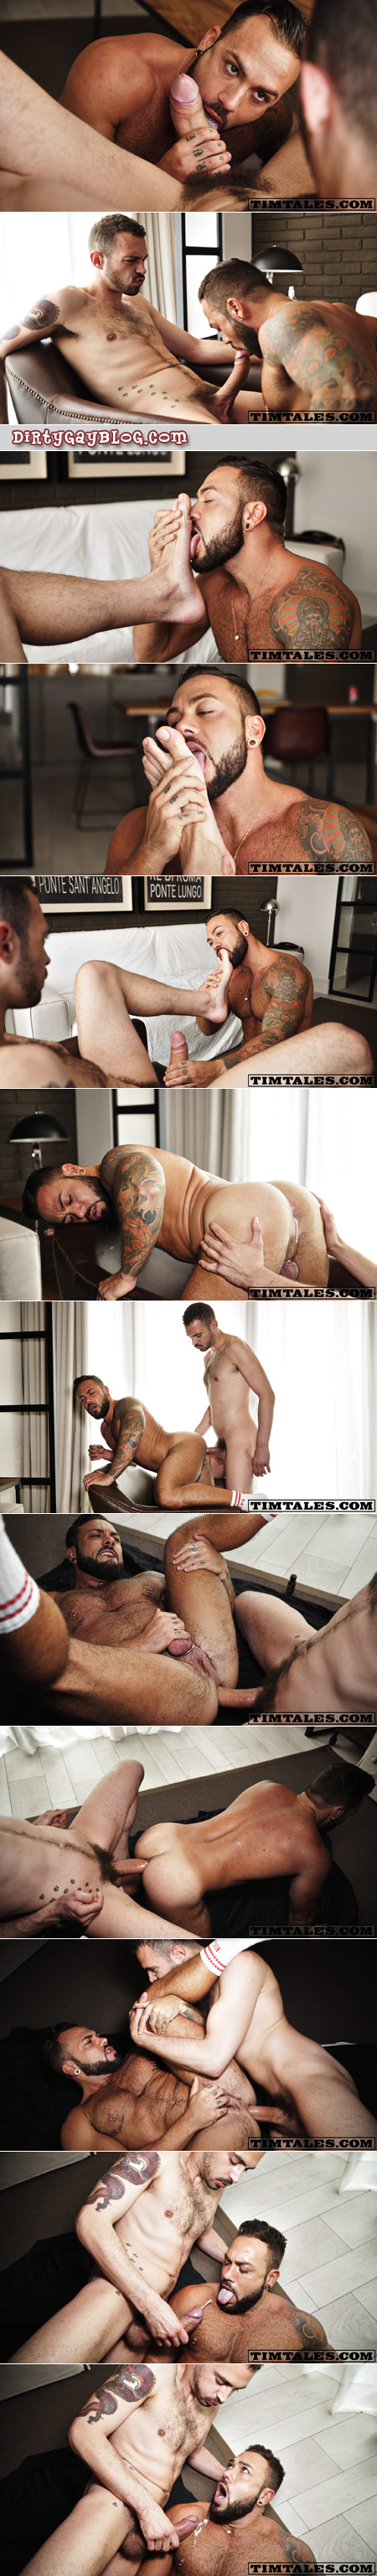 Muscle bear being fucked bareback by a tattooed guy with a monster cock.